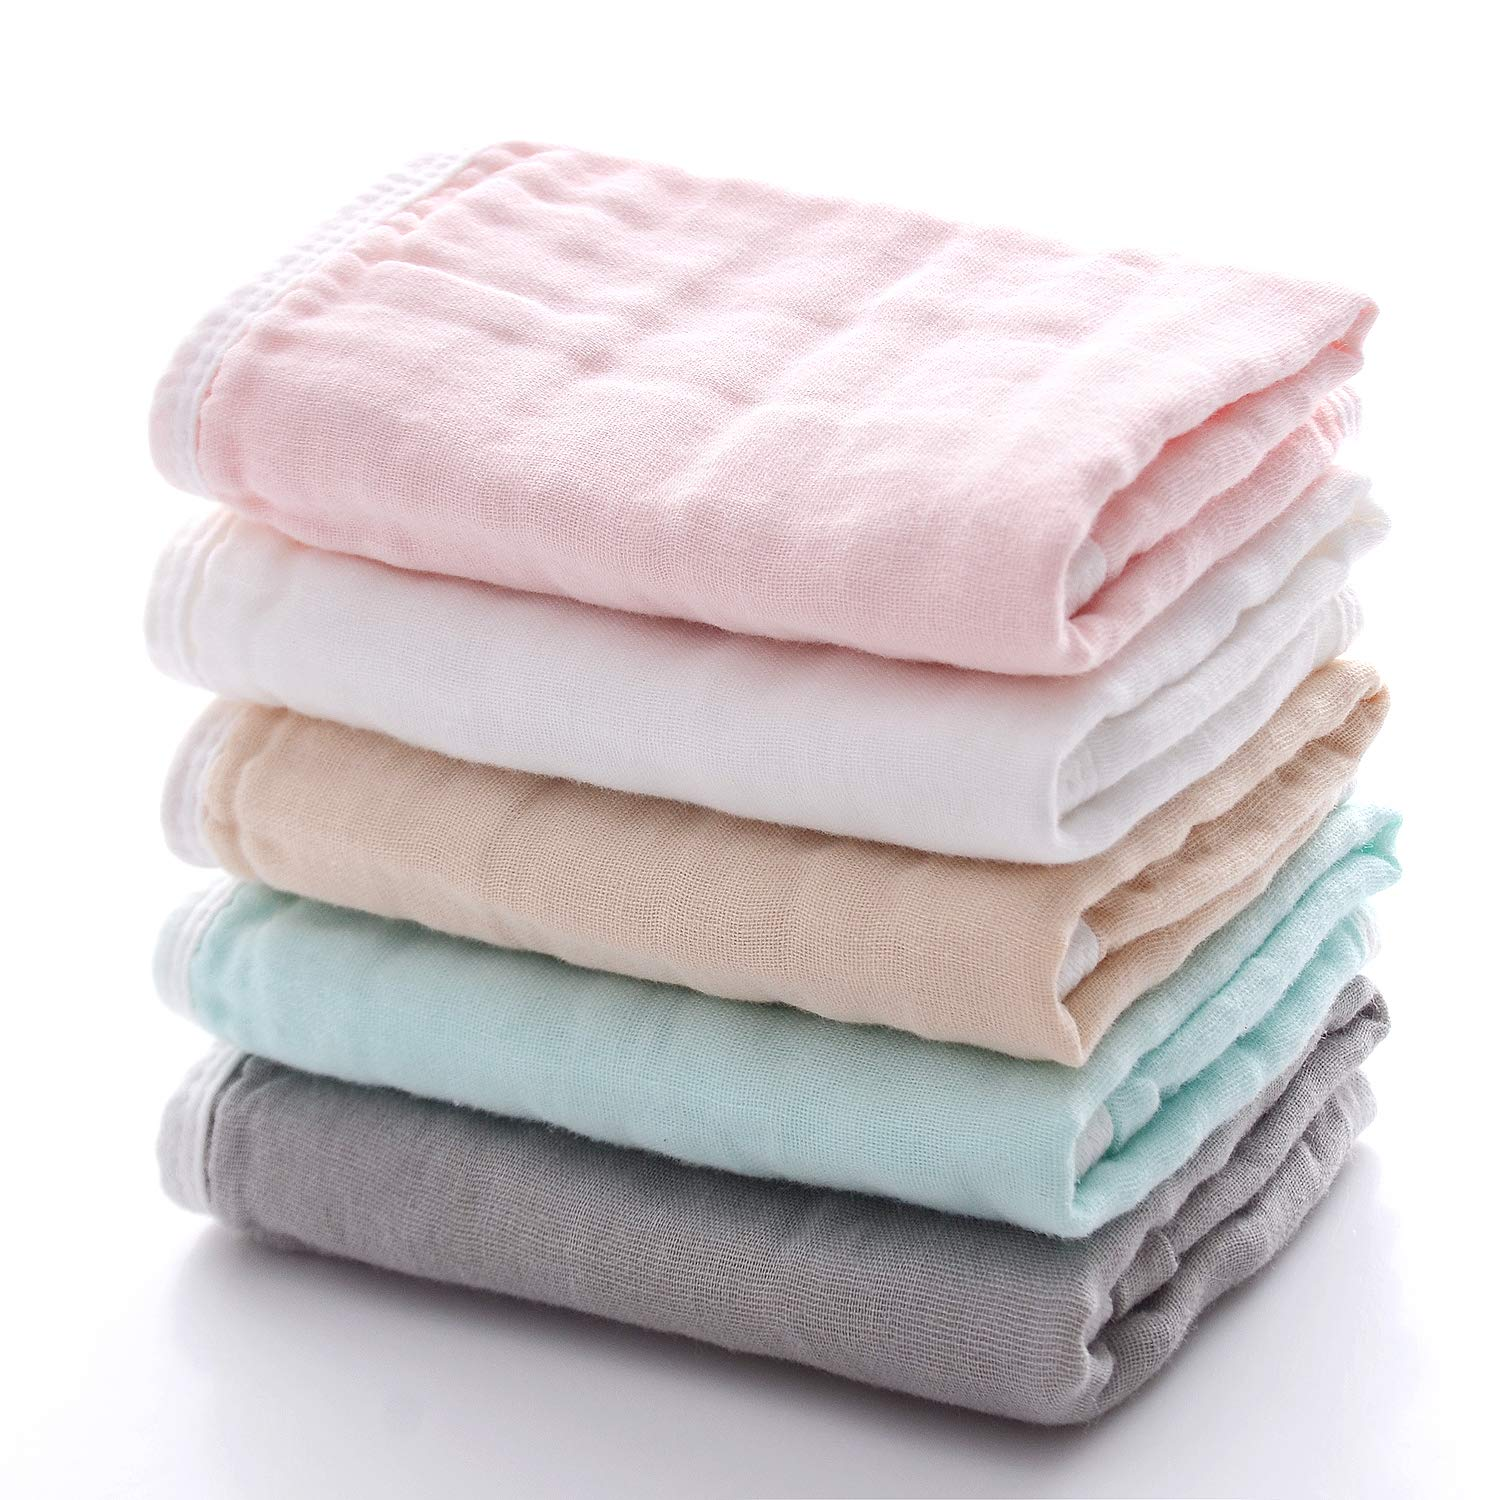 MUKIN Baby Bath Washcloths - [High Density] Muslin Baby Washcloth for Newborn. Ultra Soft and Absorbent Wash Cloths for Babies  Reusable Baby Wipes for Baby Sensitive Skin (5 Pack)